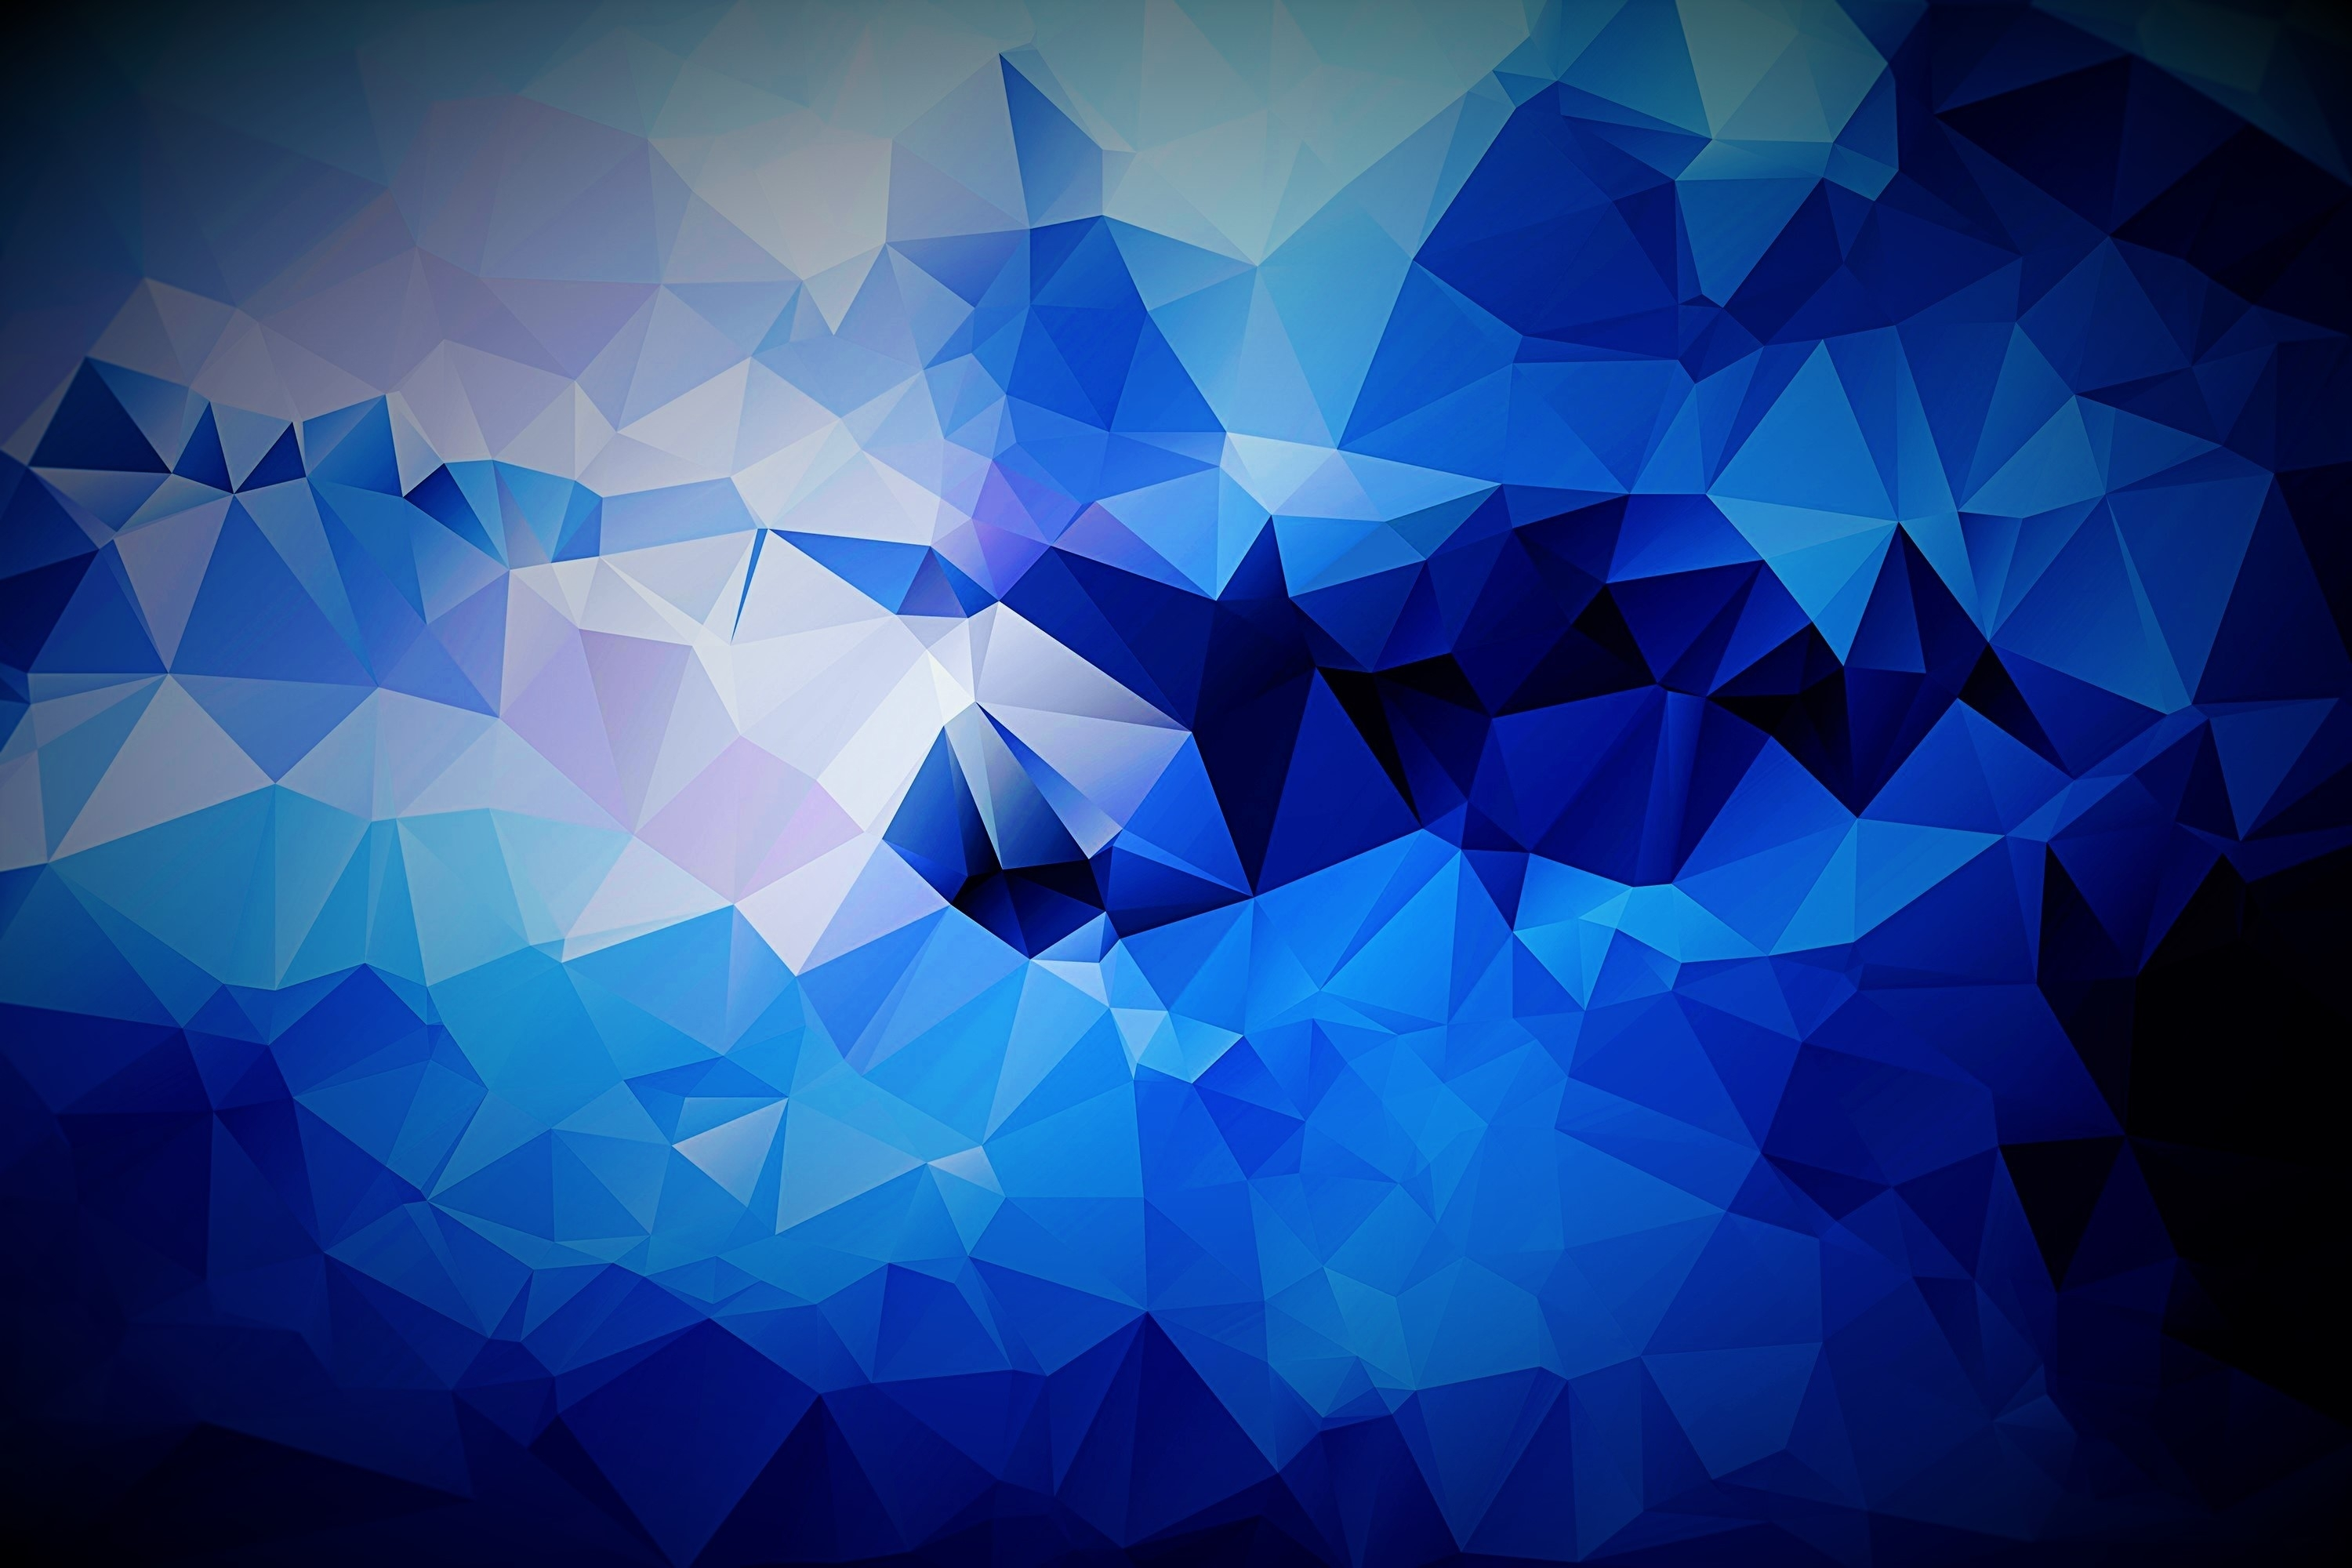 3d & abstract blue abtsract wallpapers (desktop, phone, tablet